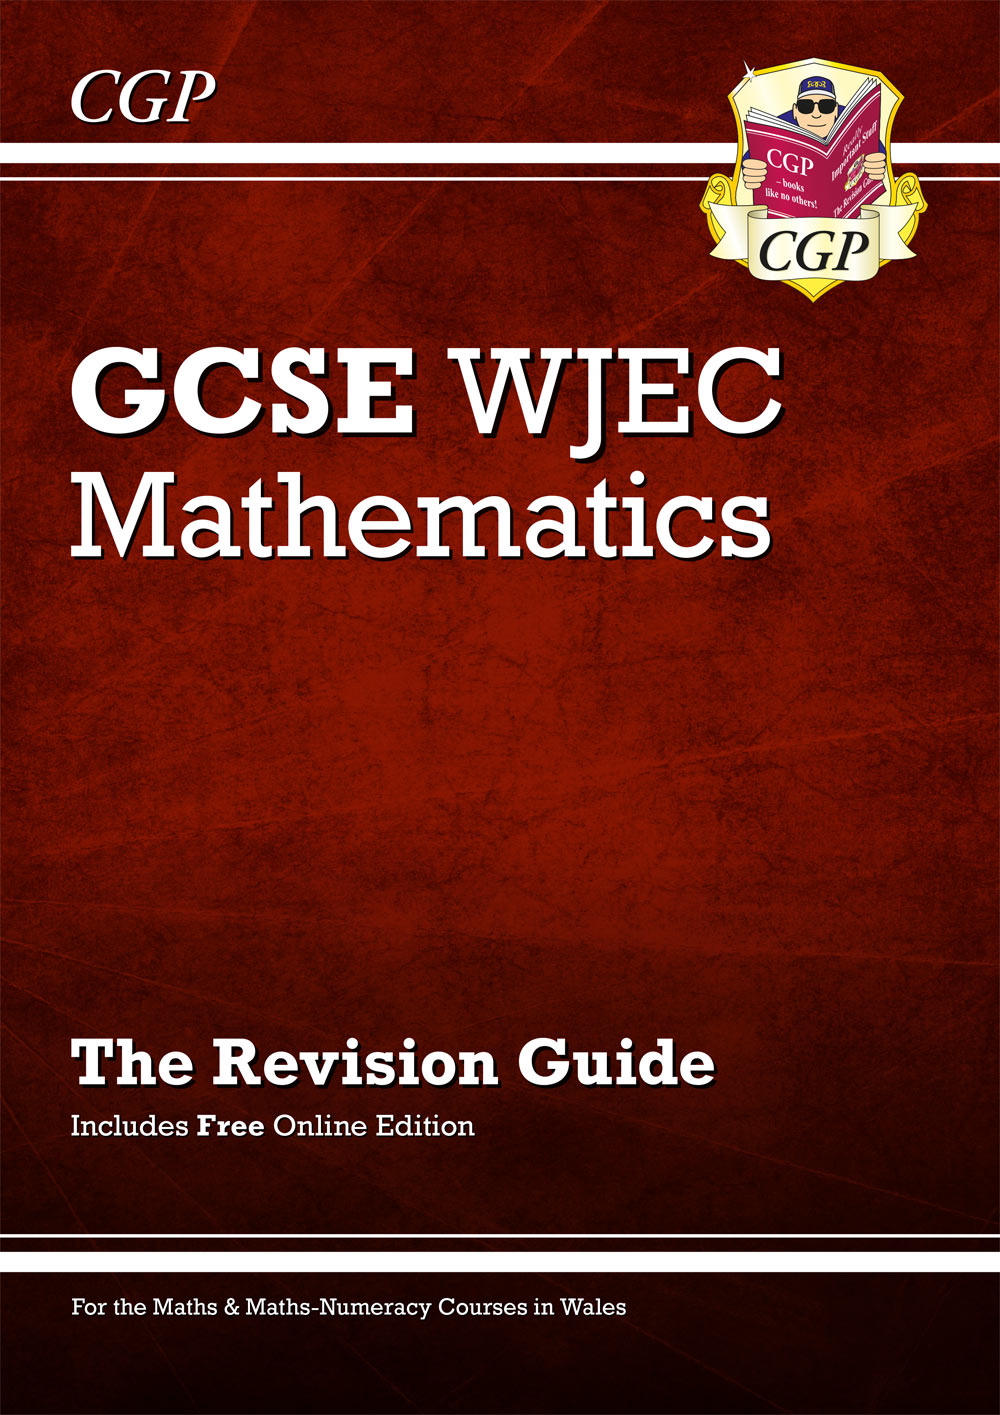 MWHR42 - WJEC GCSE Maths Revision Guide (with Online Edition)